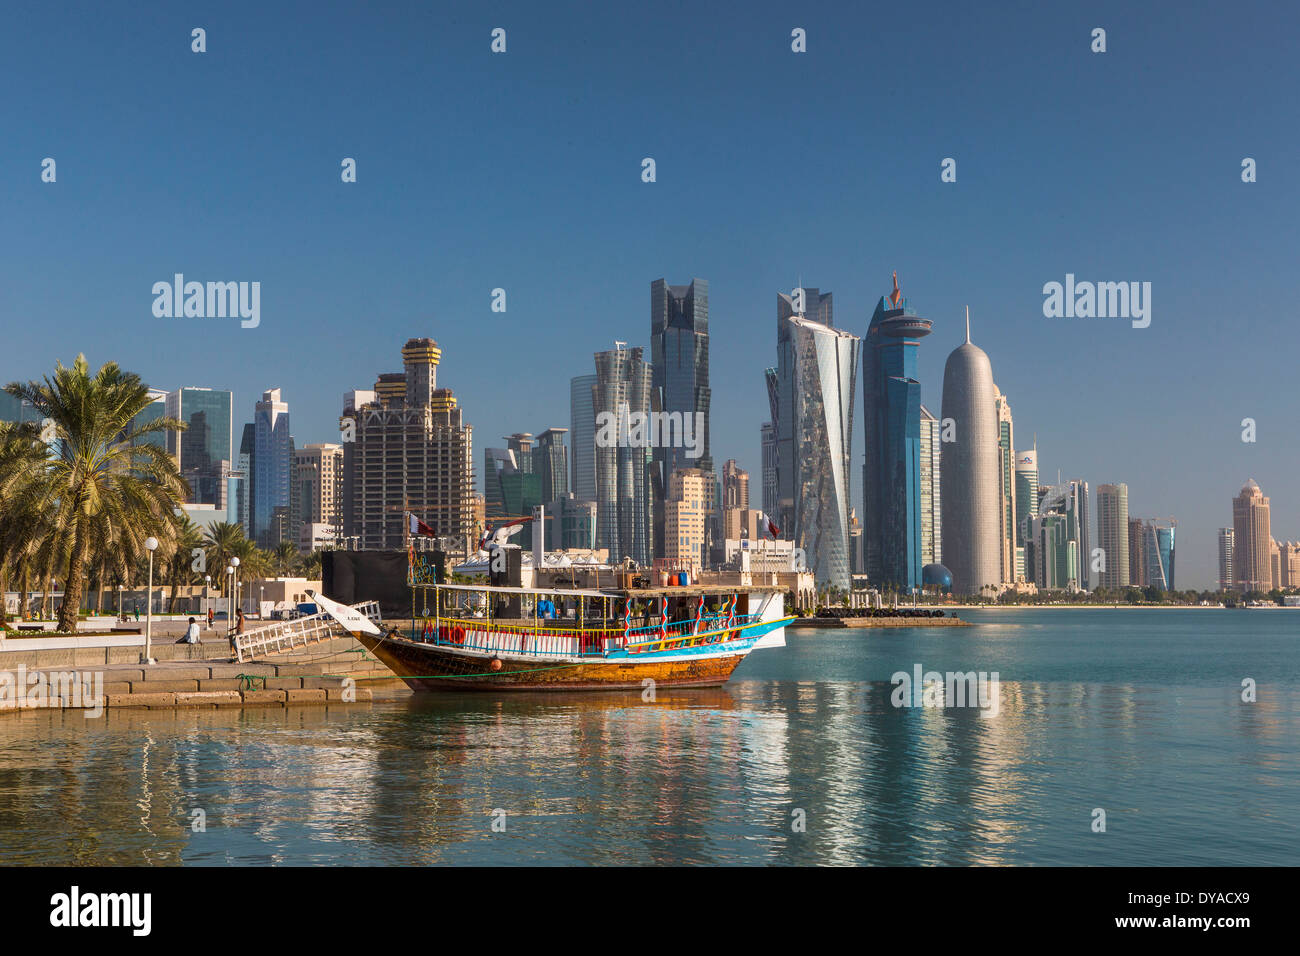 Burj Al Bidda Doha Qatar Moyen-orient World Trade Center bay boat architecture colorée ville futuriste corniche Banque D'Images